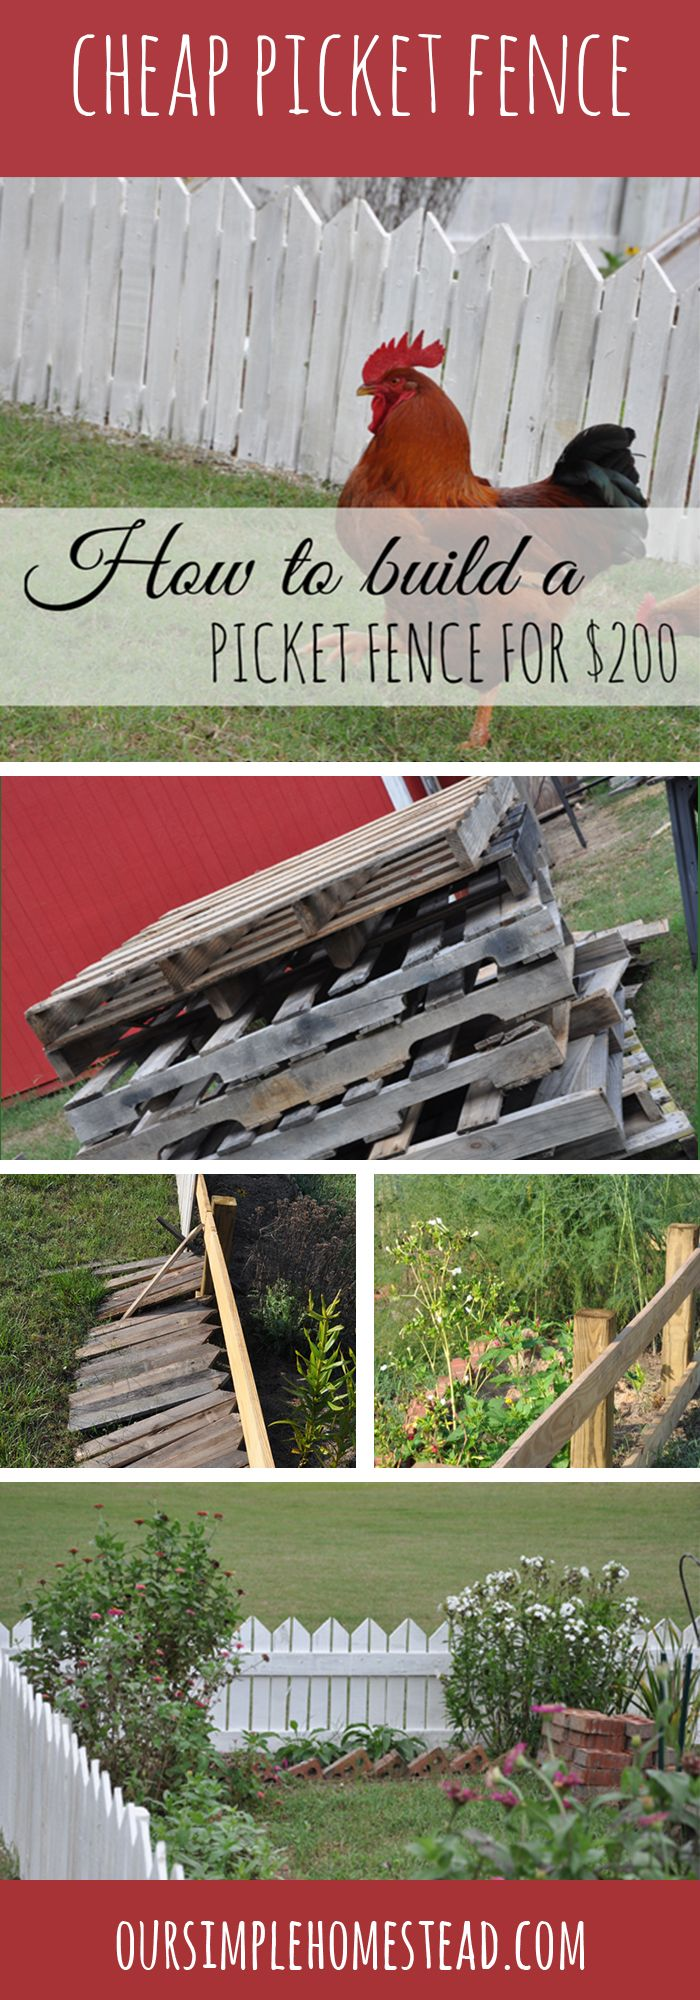 Best 20 chicken fence ideas on pinterest chicken coops garden this months project was to build a cheap wood picket fence around the kitchen garden we hope to keep the chickens from using it as their personal space baanklon Choice Image